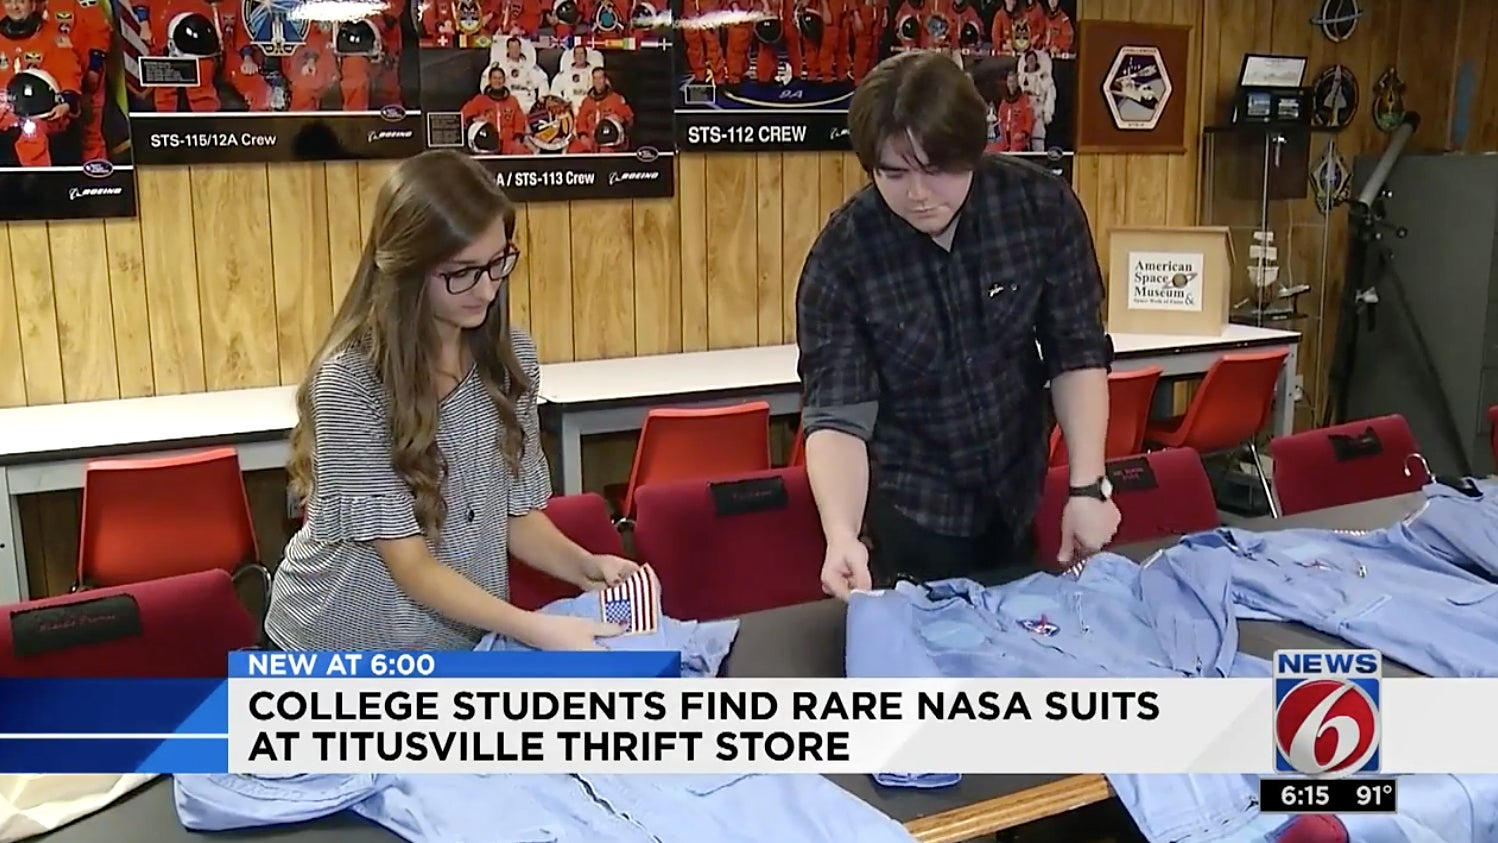 Op Shop Shoppers Buy $20,000 Worth Of Vintage NASA Flight Suits For $1.20